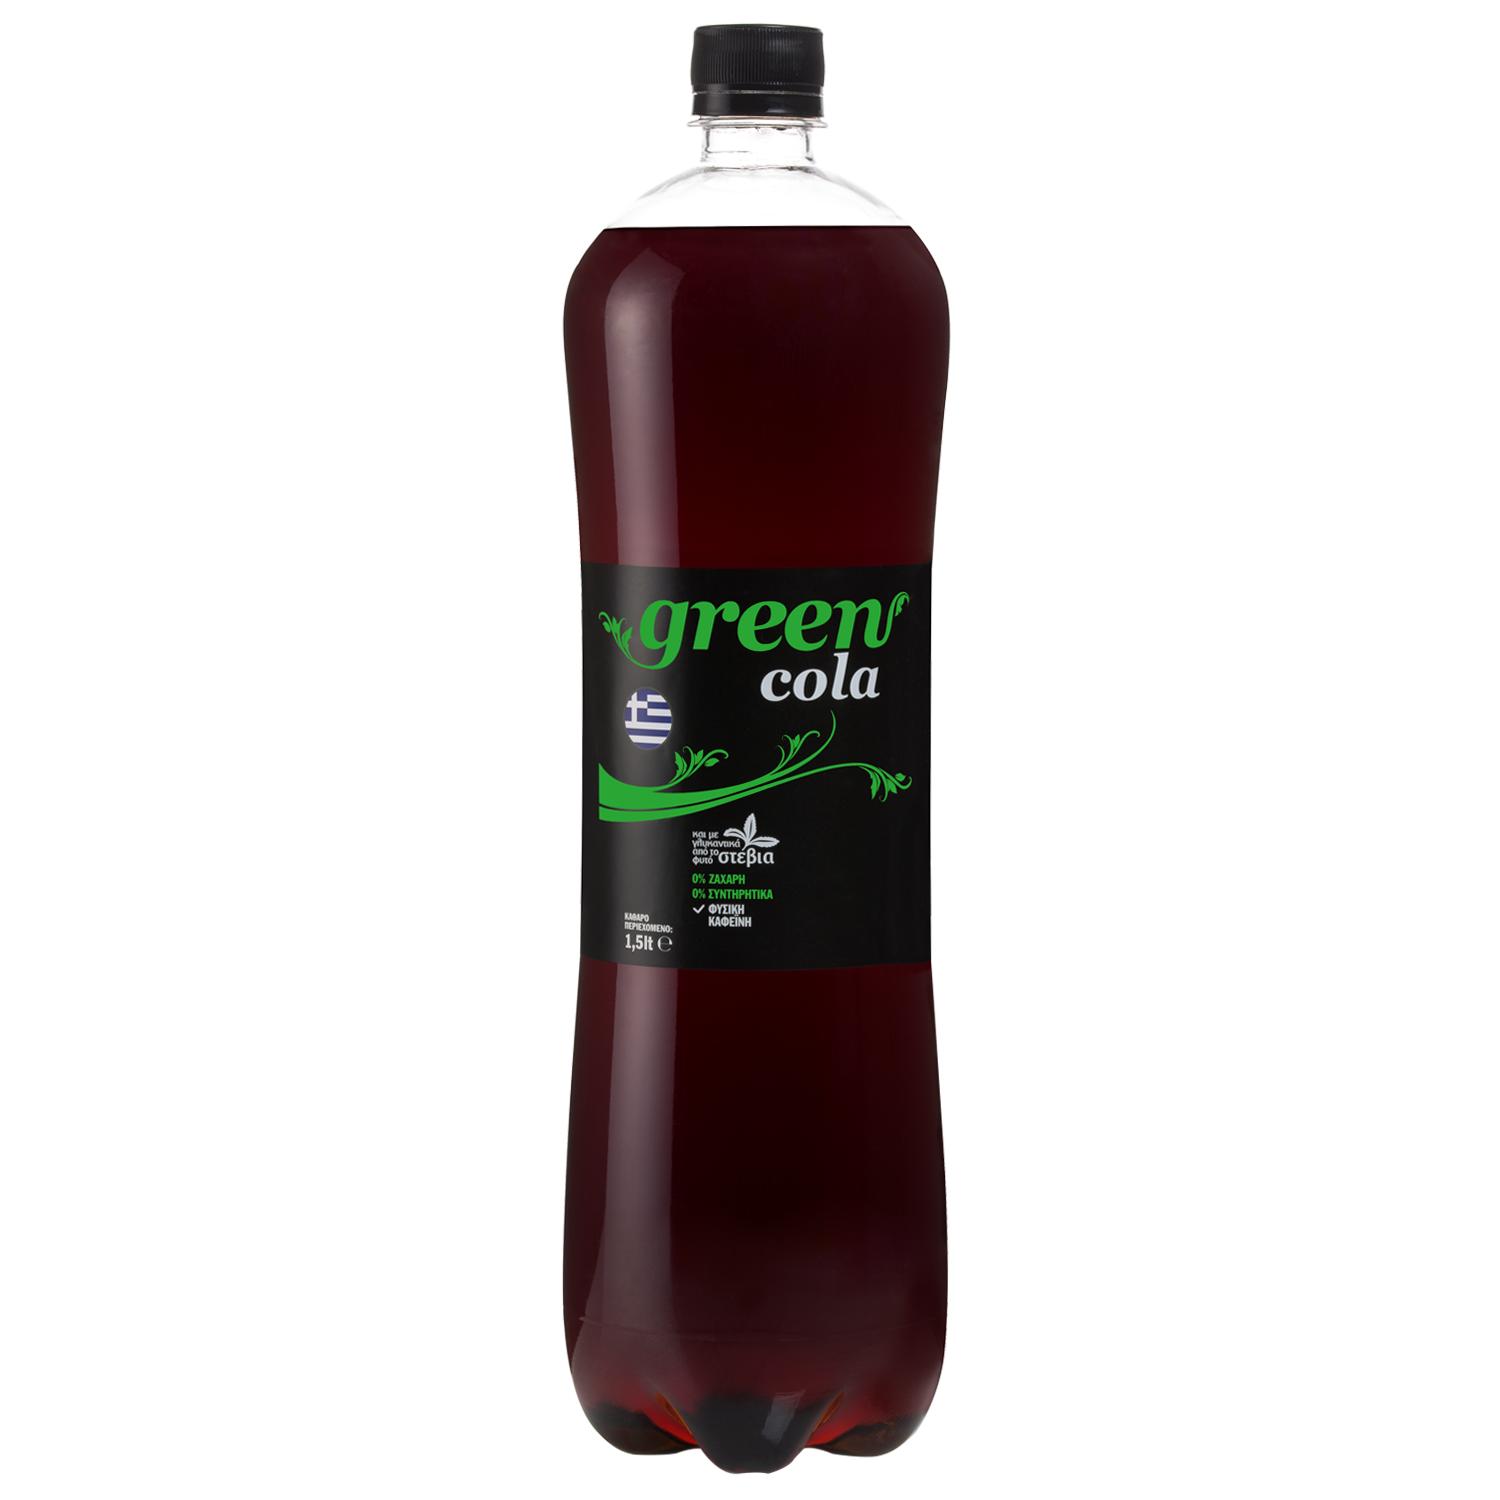 Green Cola - PET 1.5ml - Bottle